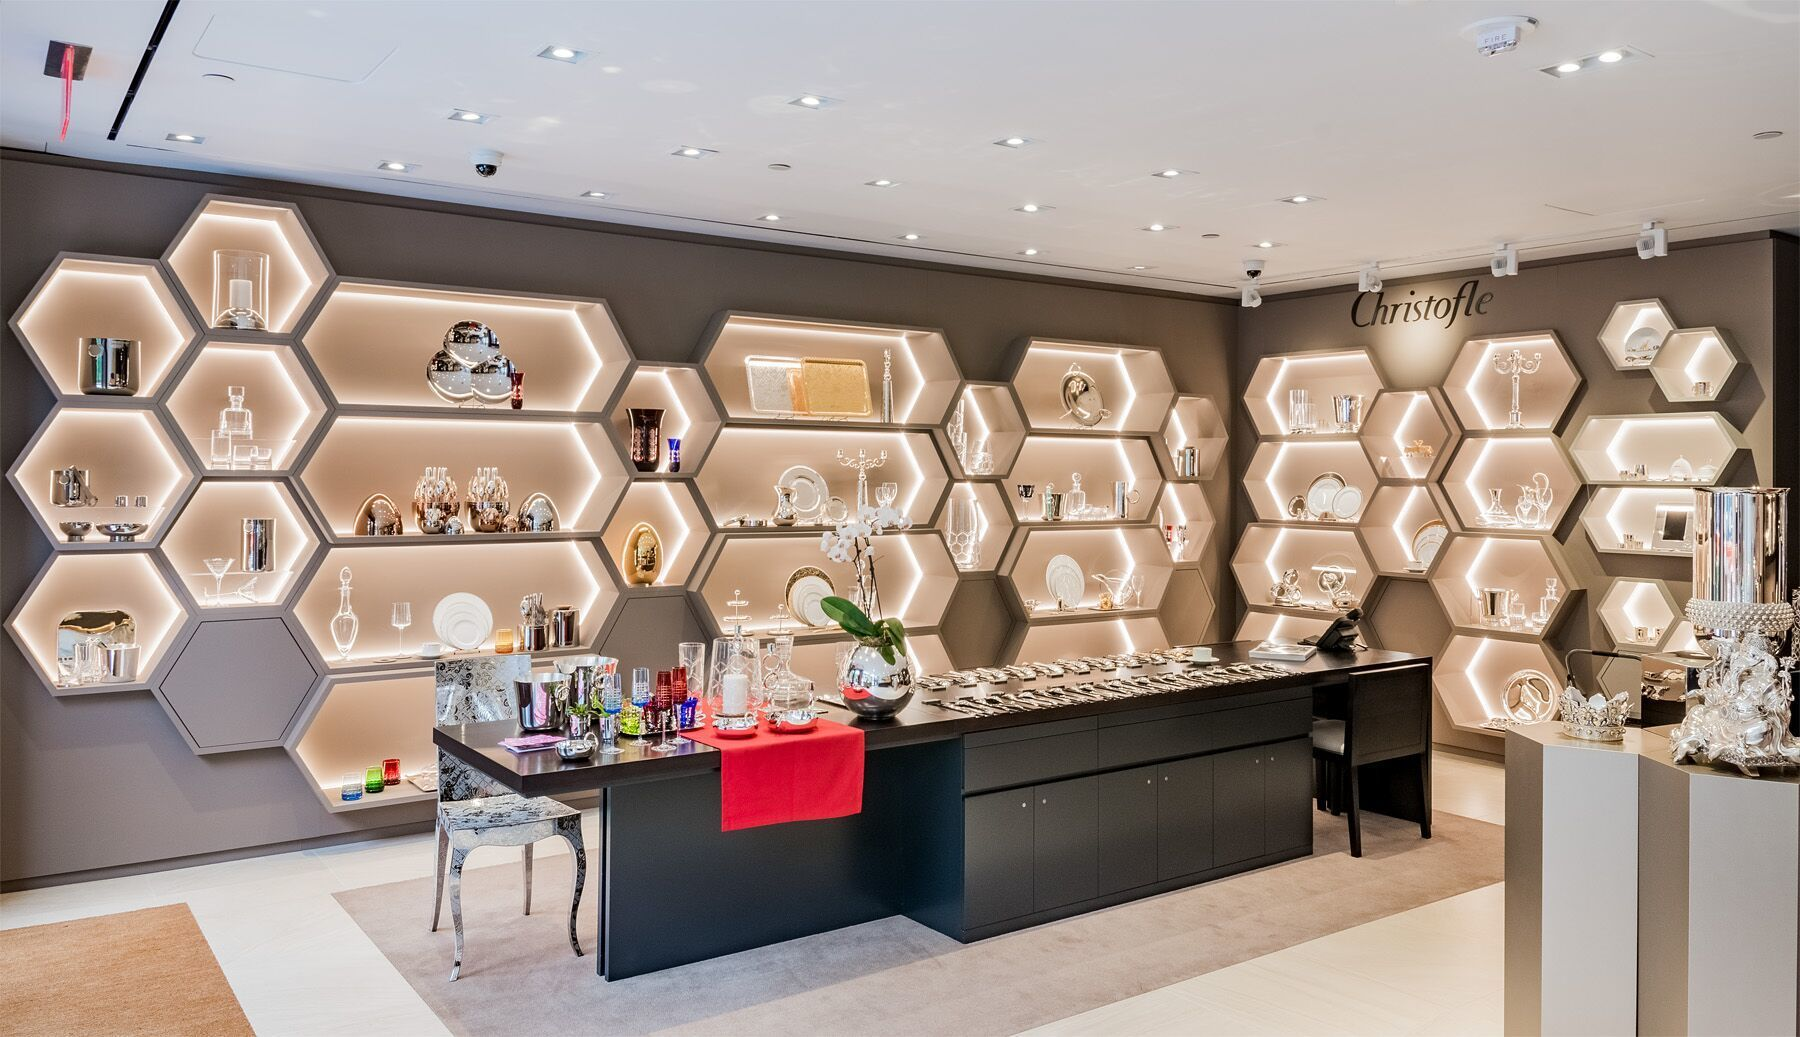 Plenty of shelving was a necessity for Christofle Paris to showcase their flatware and silverware at their downtown Washington D.C. located.